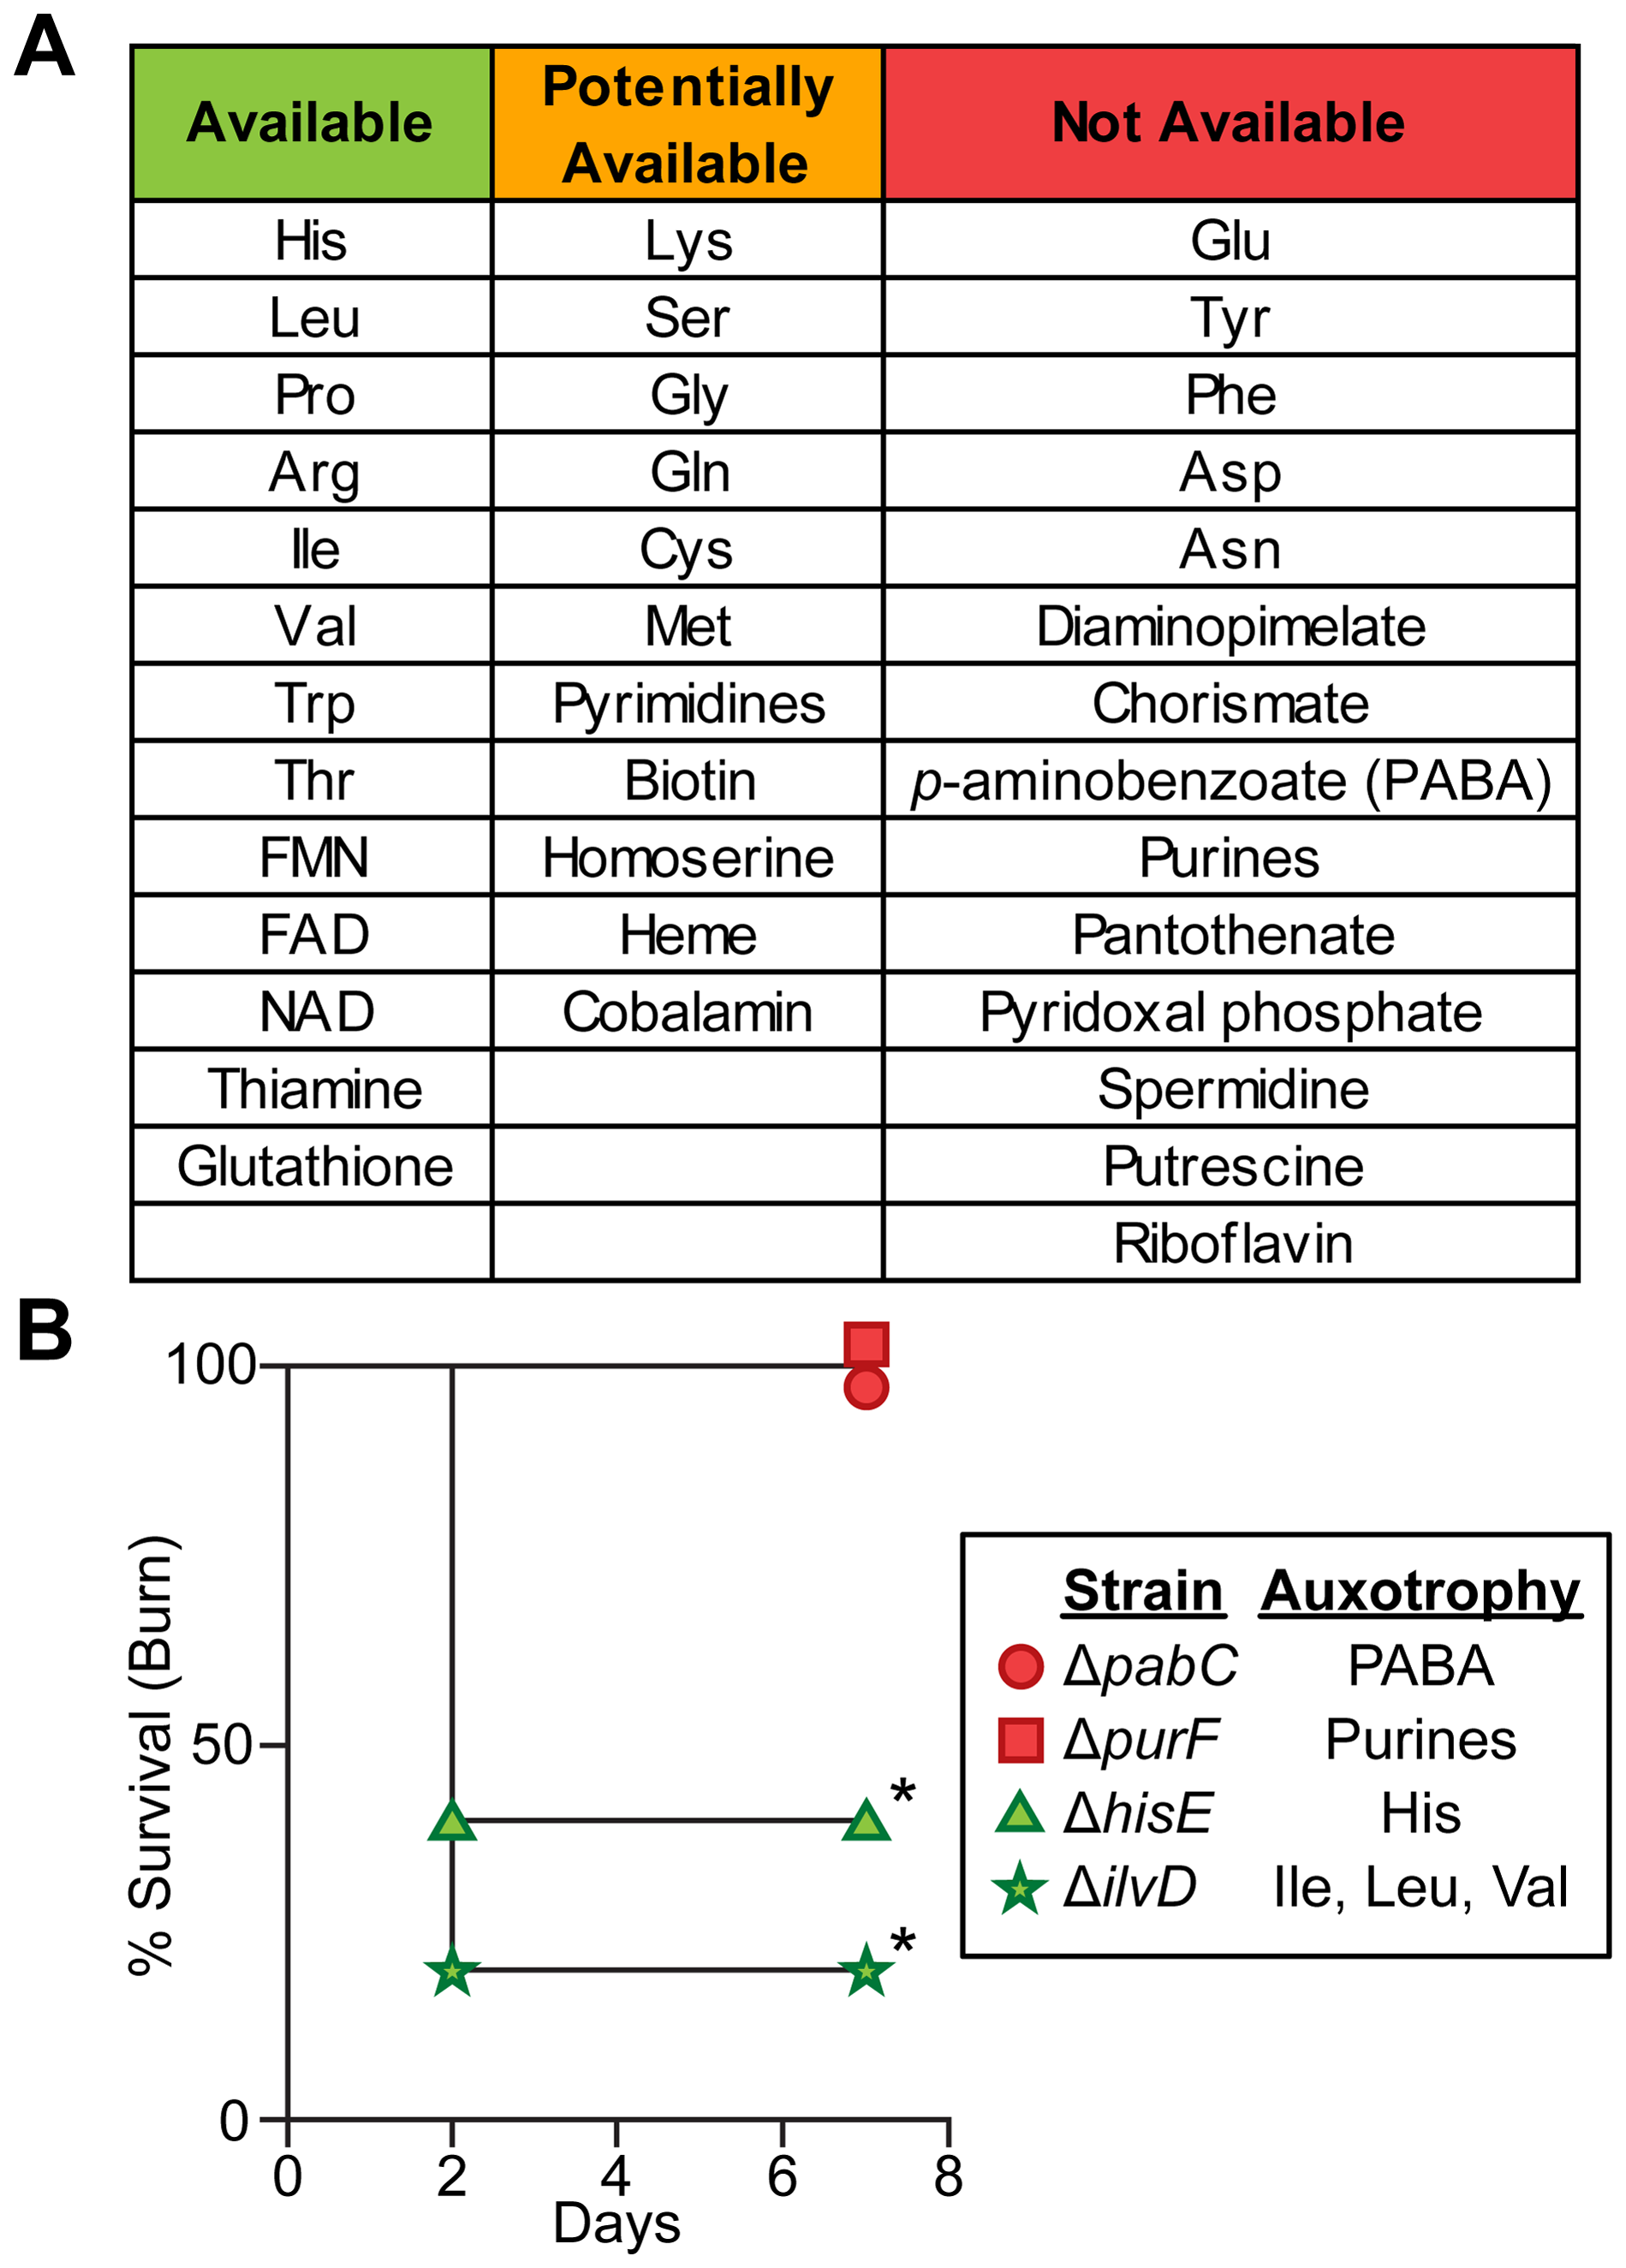 Biosynthetic requirements of <i>P. aeruginosa</i> during wound infection.